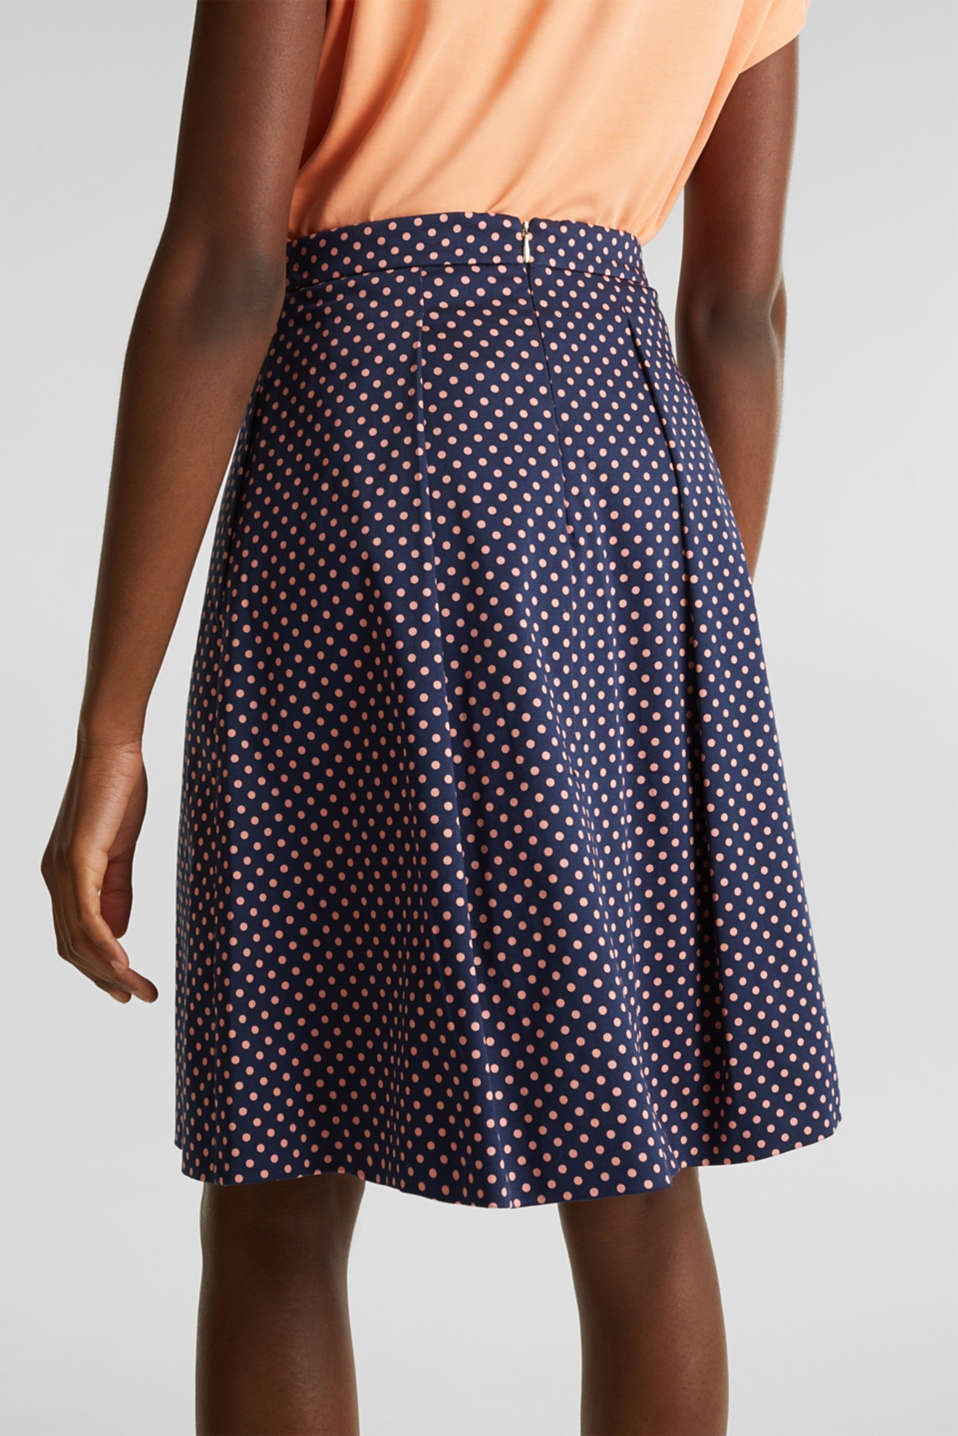 Satined polka dot skirt with stretch, NAVY 4, detail image number 6